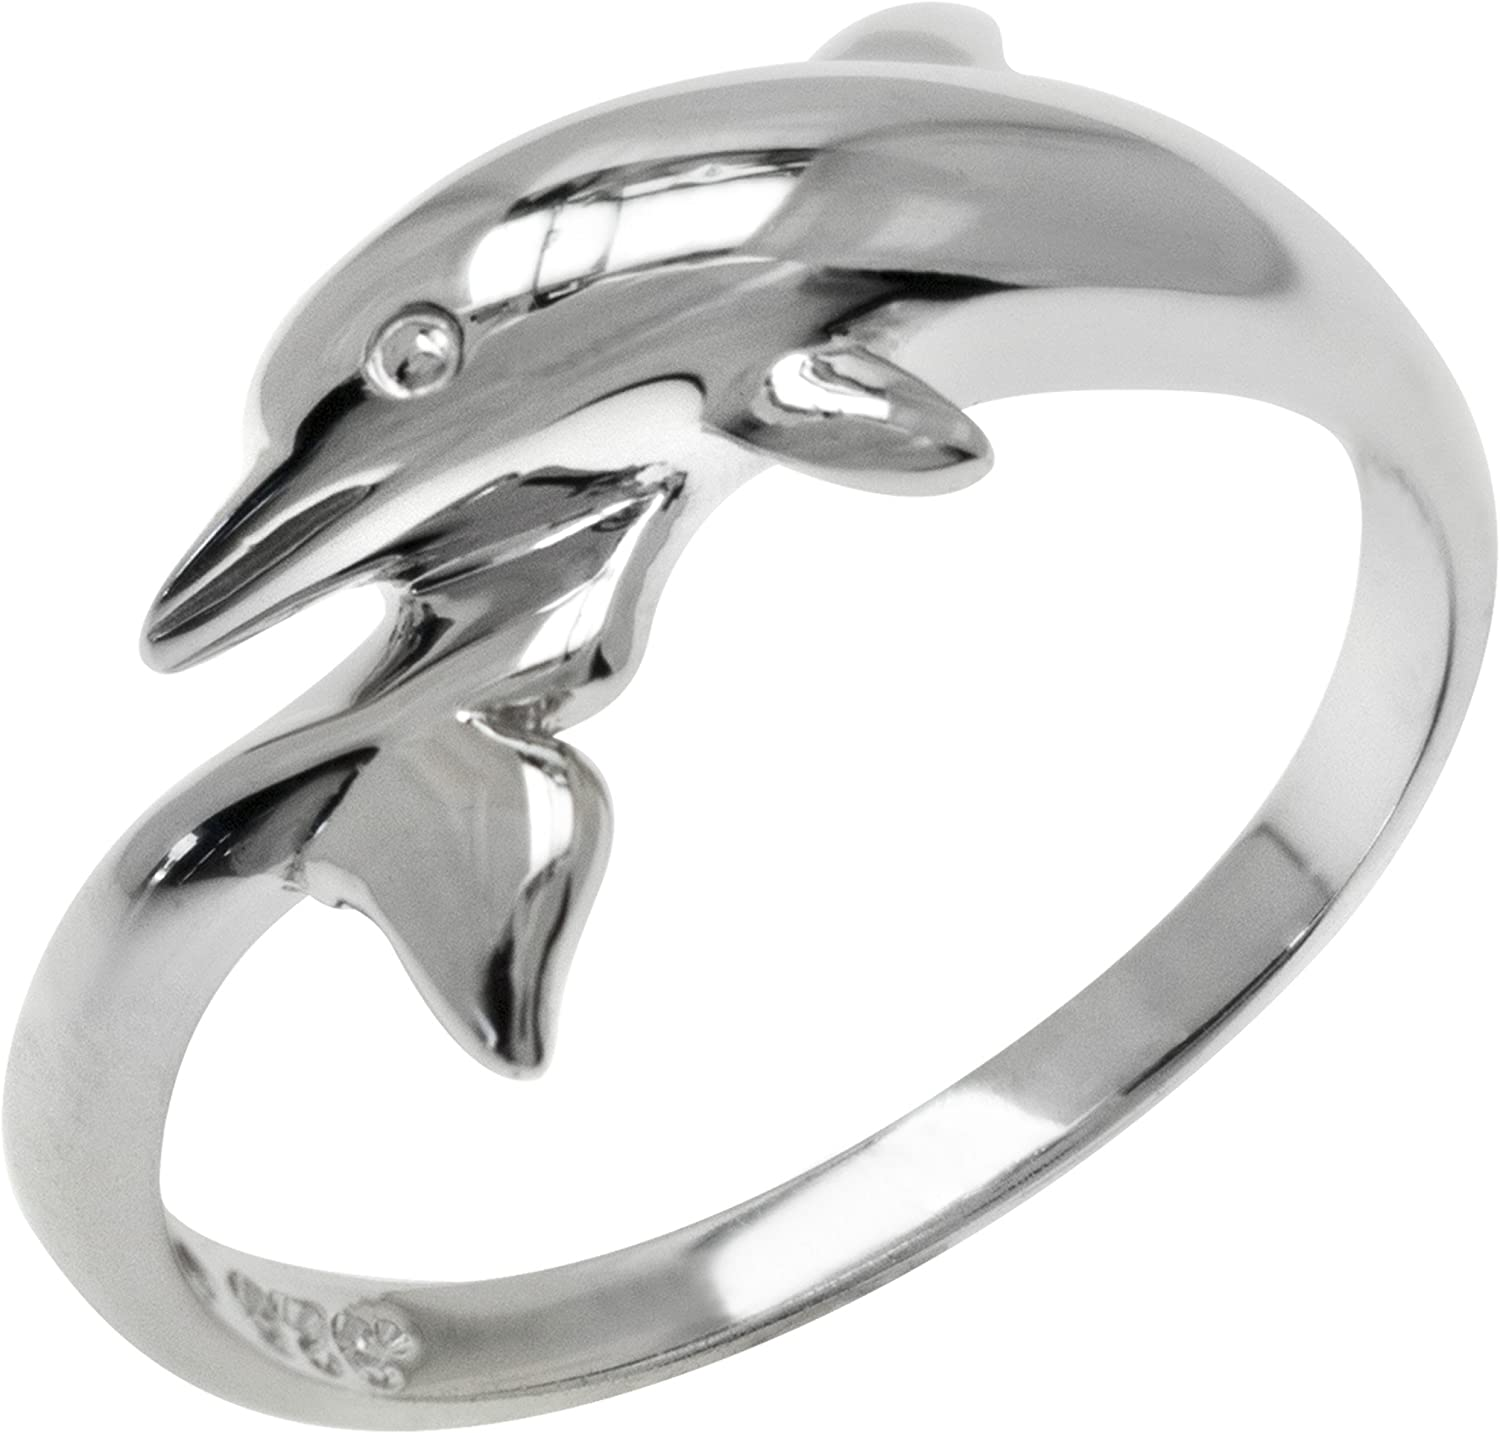 20. Sterling Silver Sea Dolphin Charm Ring